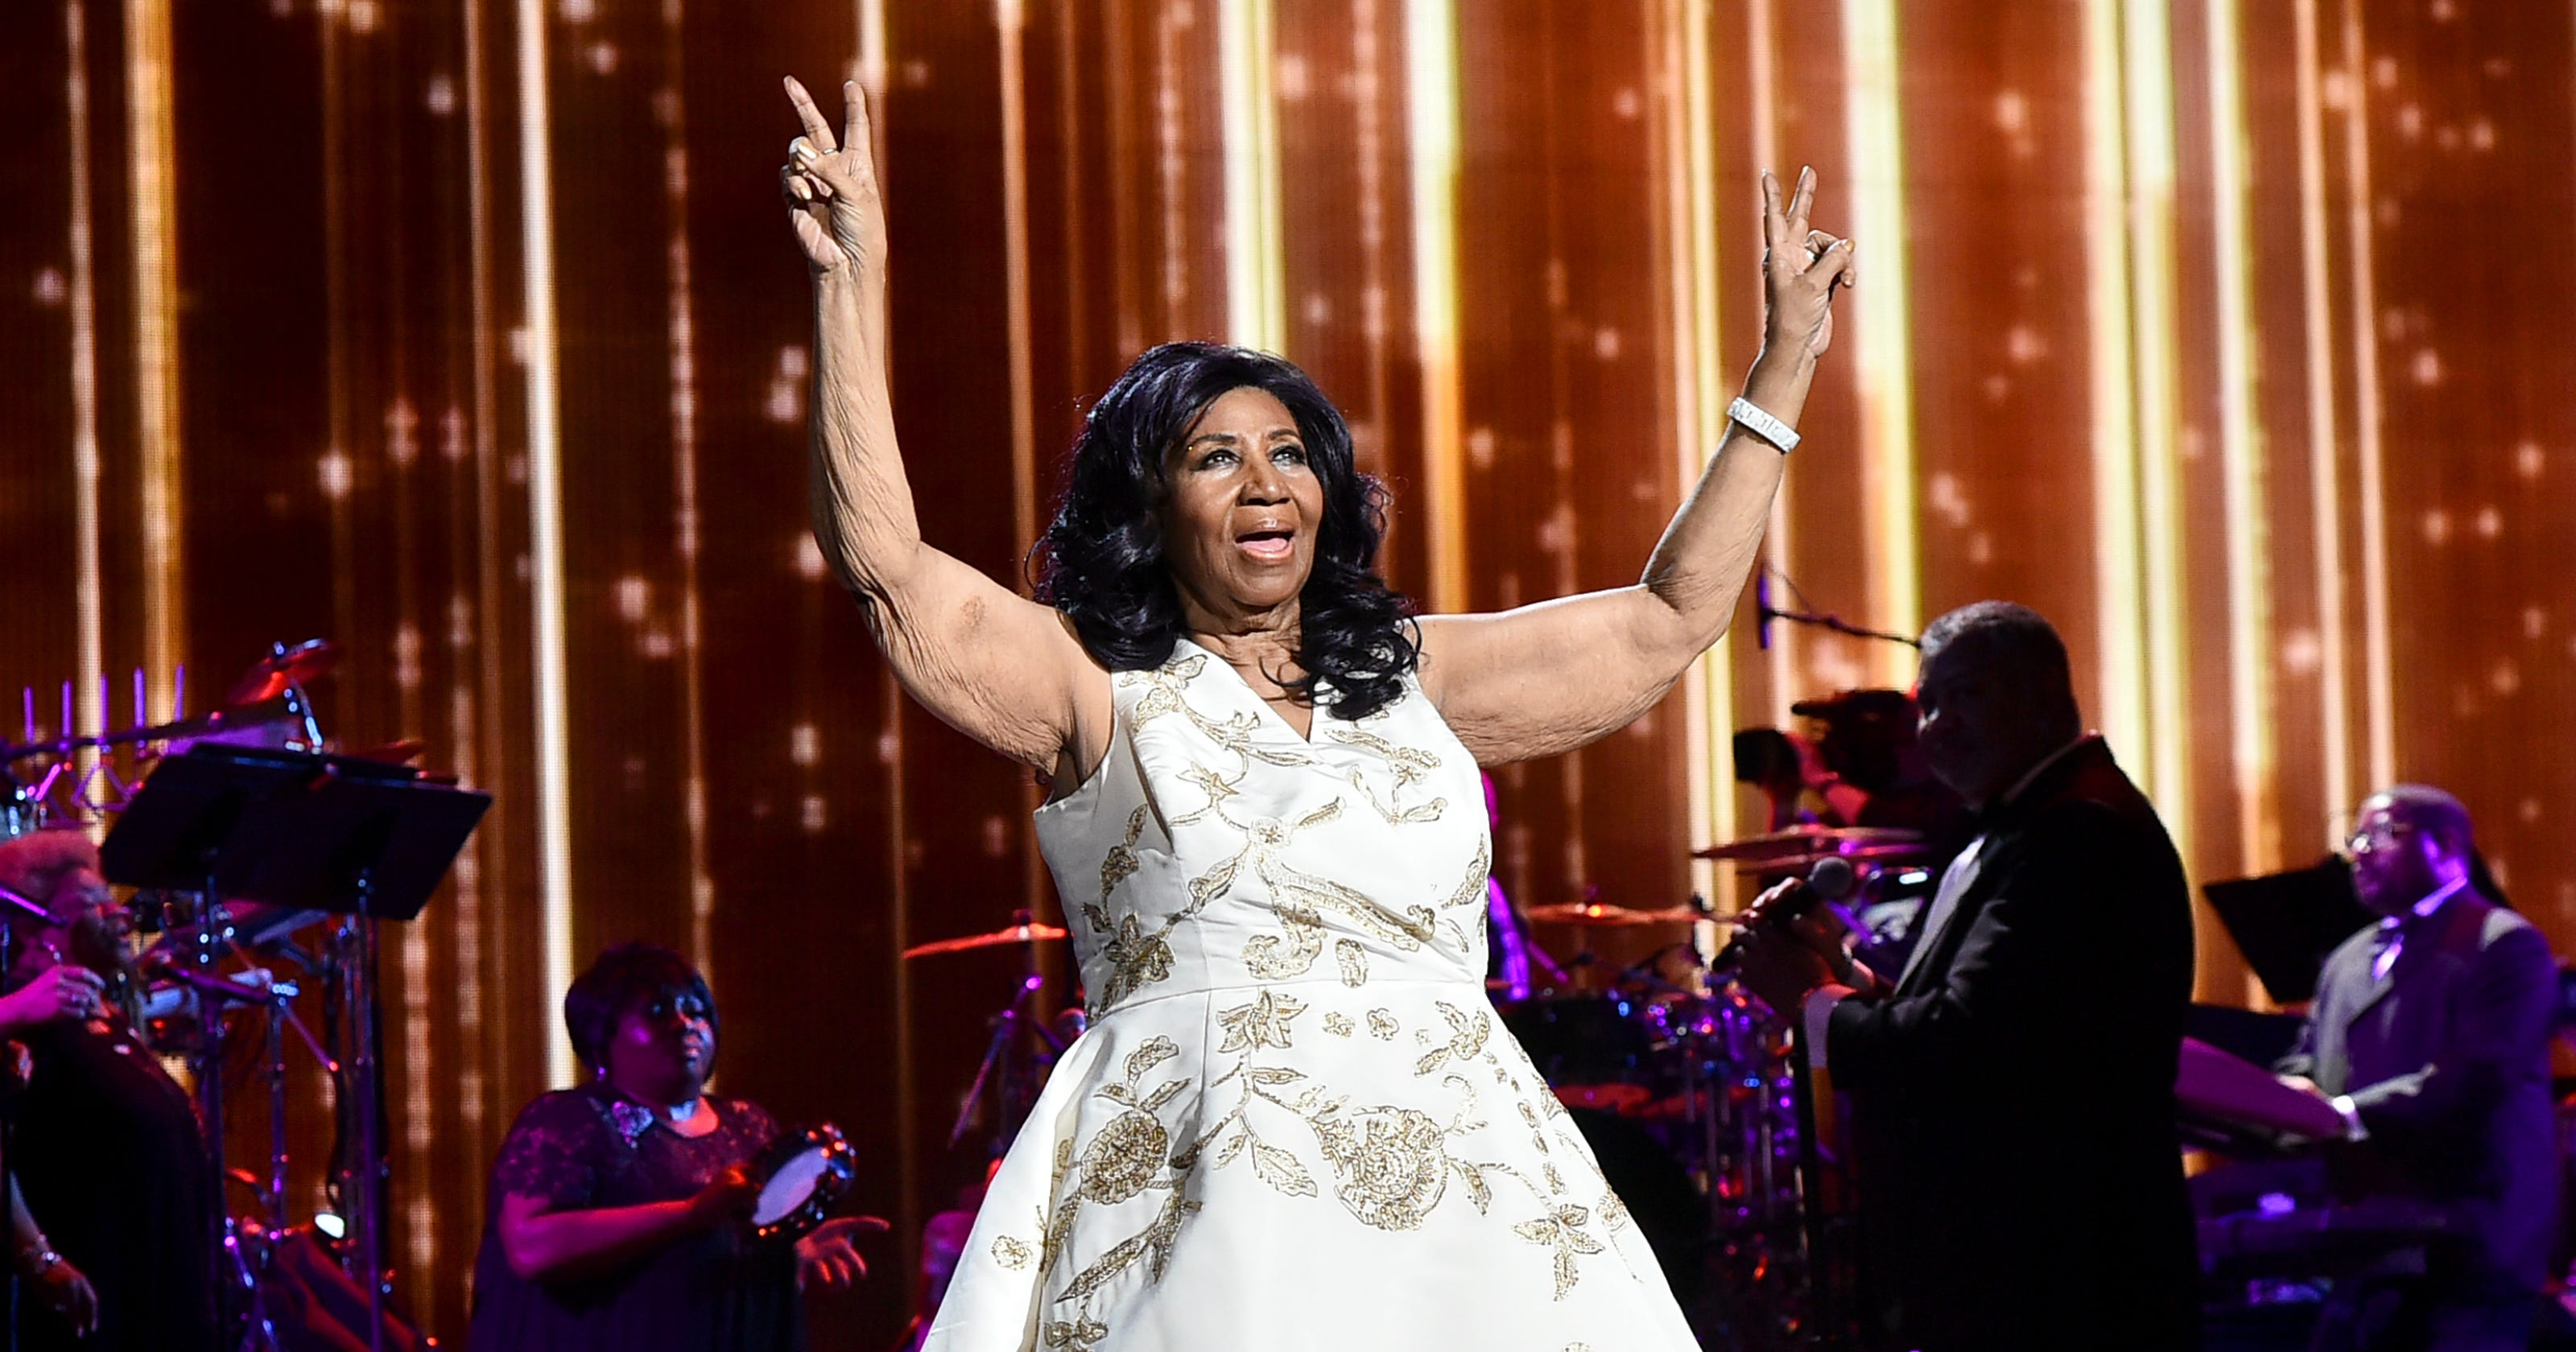 872f379095 Pancreatic cancer killed Aretha Franklin and scores of other celebs. Why